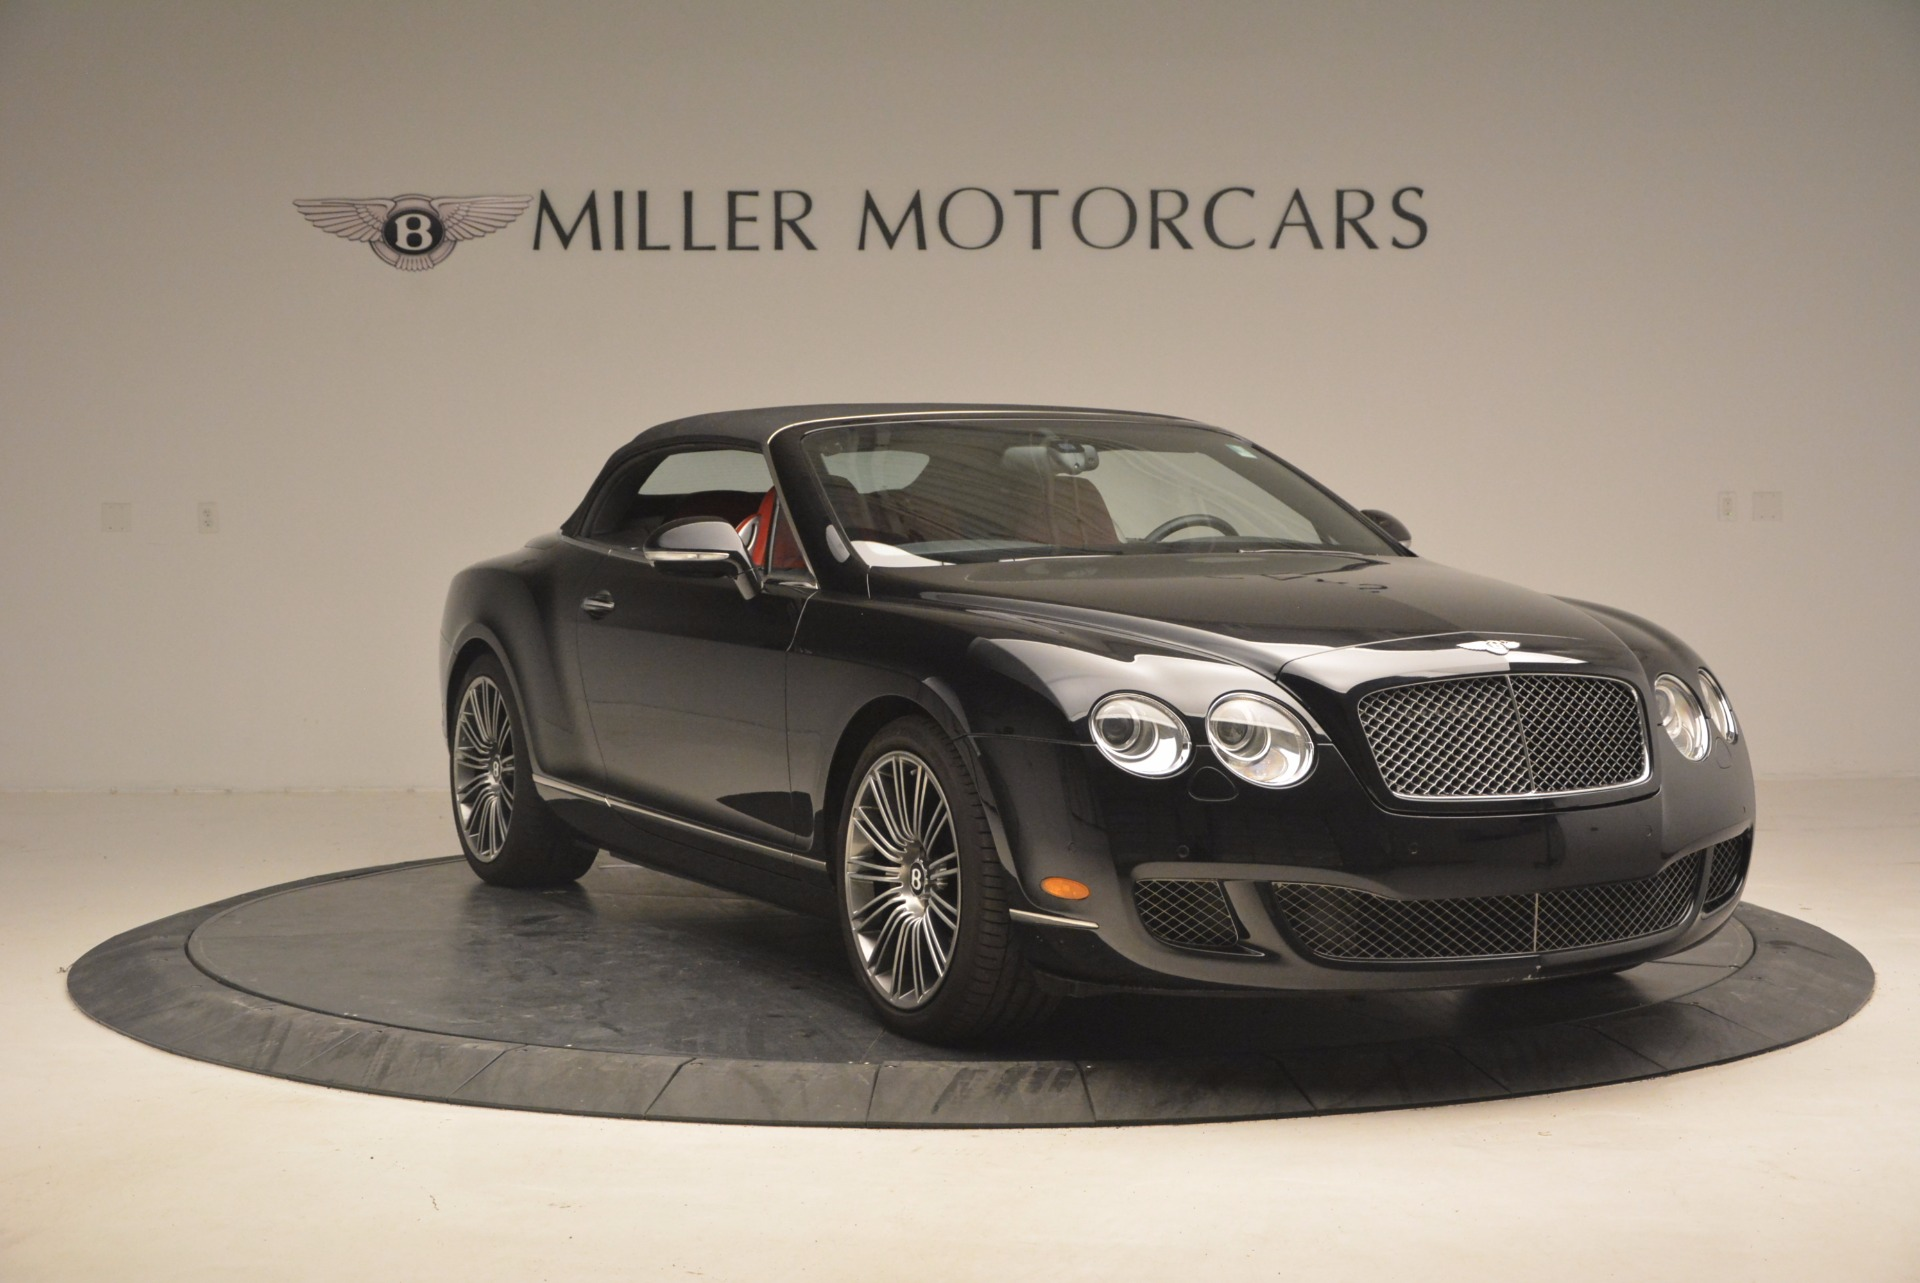 Used 2010 Bentley Continental GT Speed For Sale In Westport, CT 1298_p24